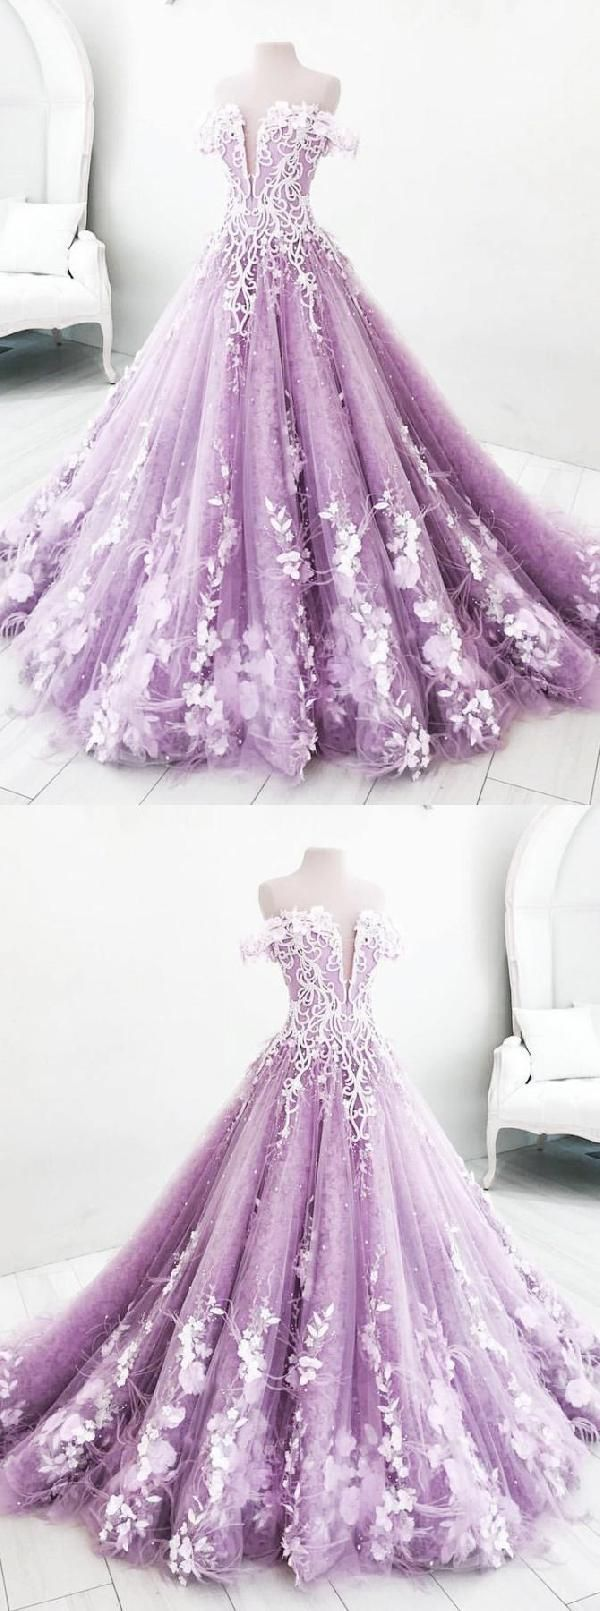 Morden Appliques Ball Gown#design #model #dress #shoes #heels